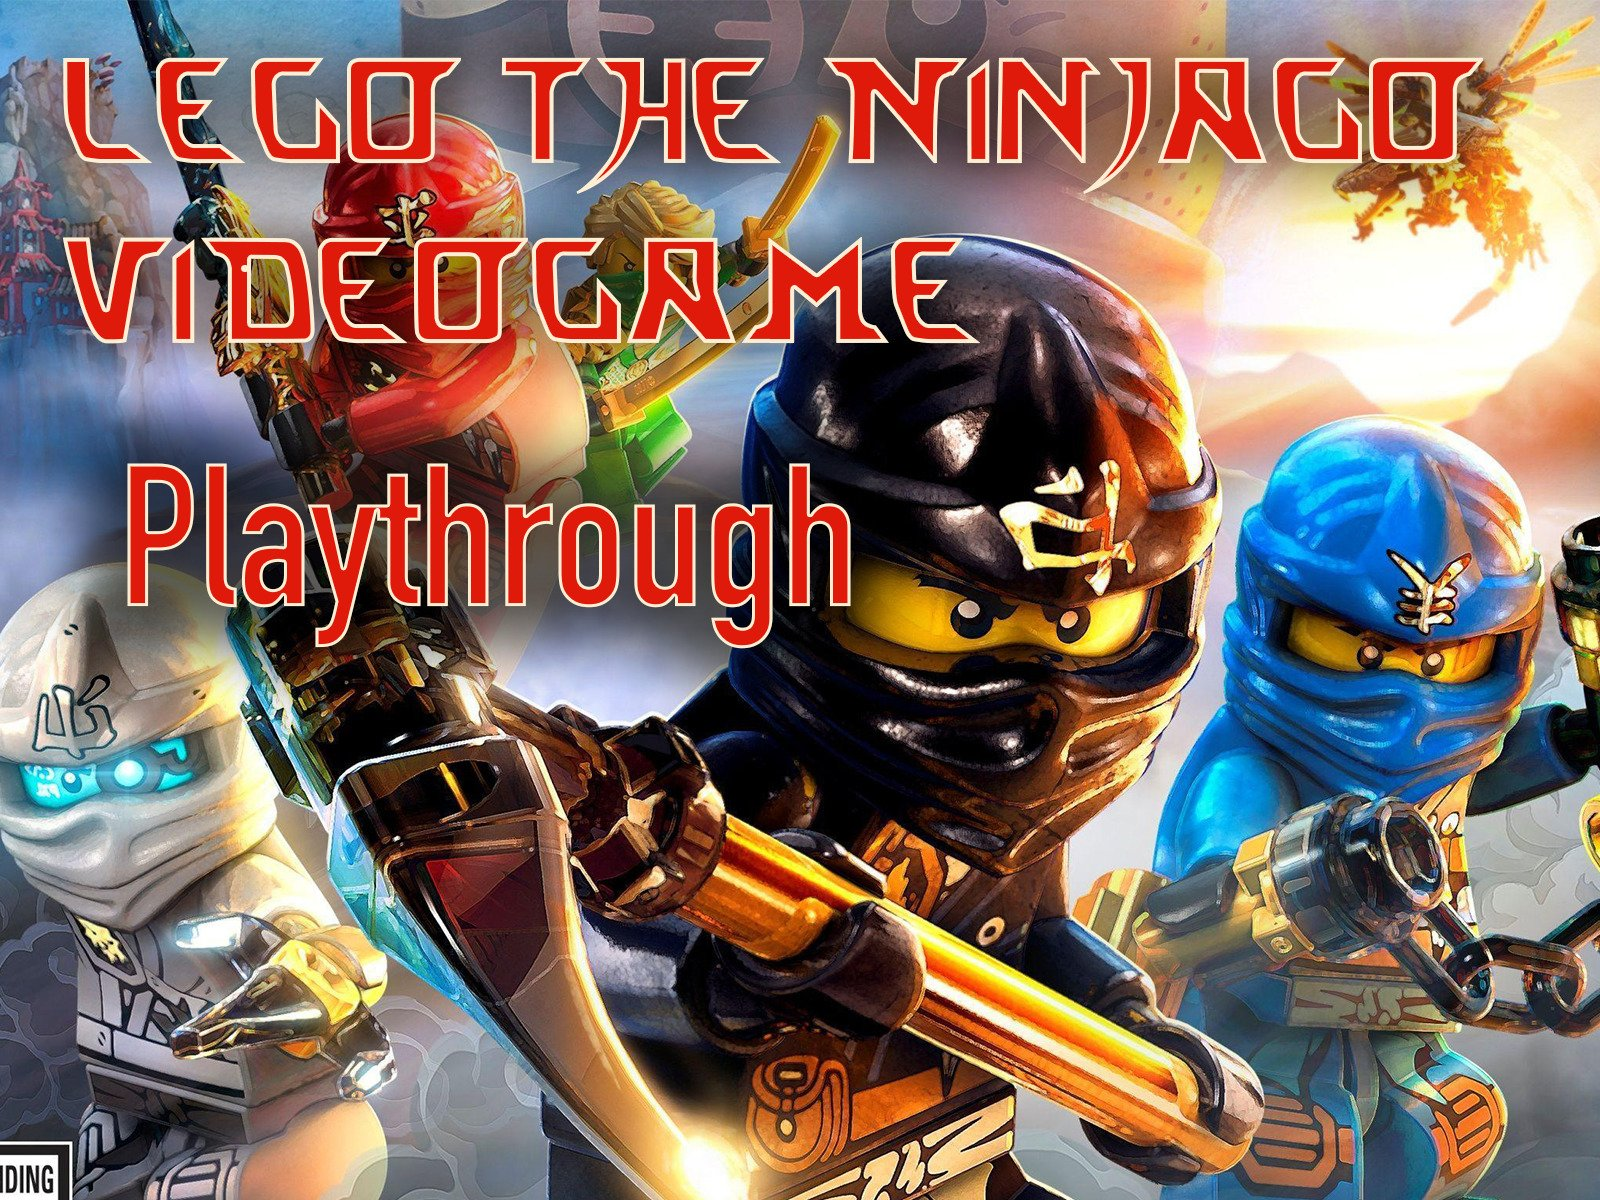 Clip: Lego The Ninjago Video Game Playthrough